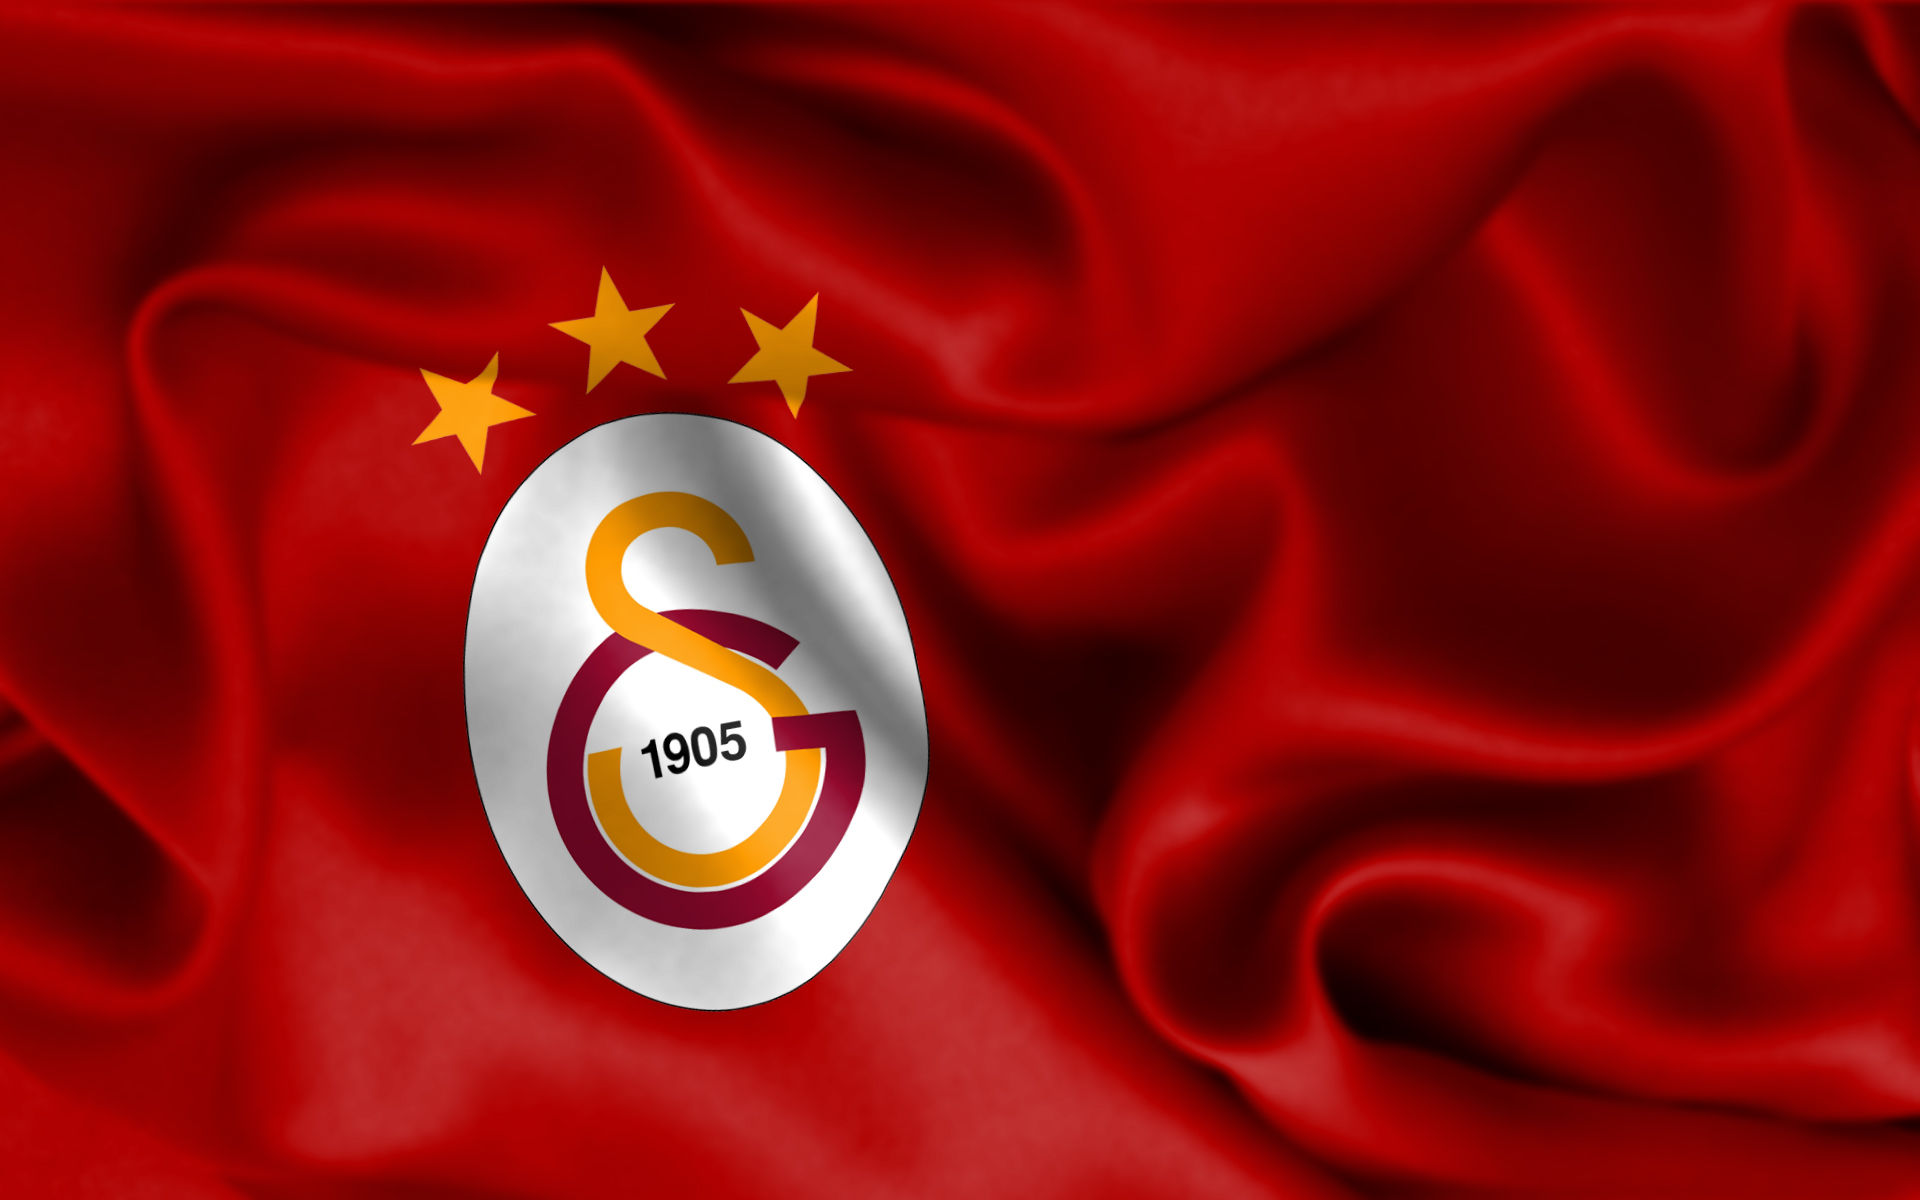 3d Hd Wallpapers Love For Mobile Fonds D 233 Cran Galatasaray Logo